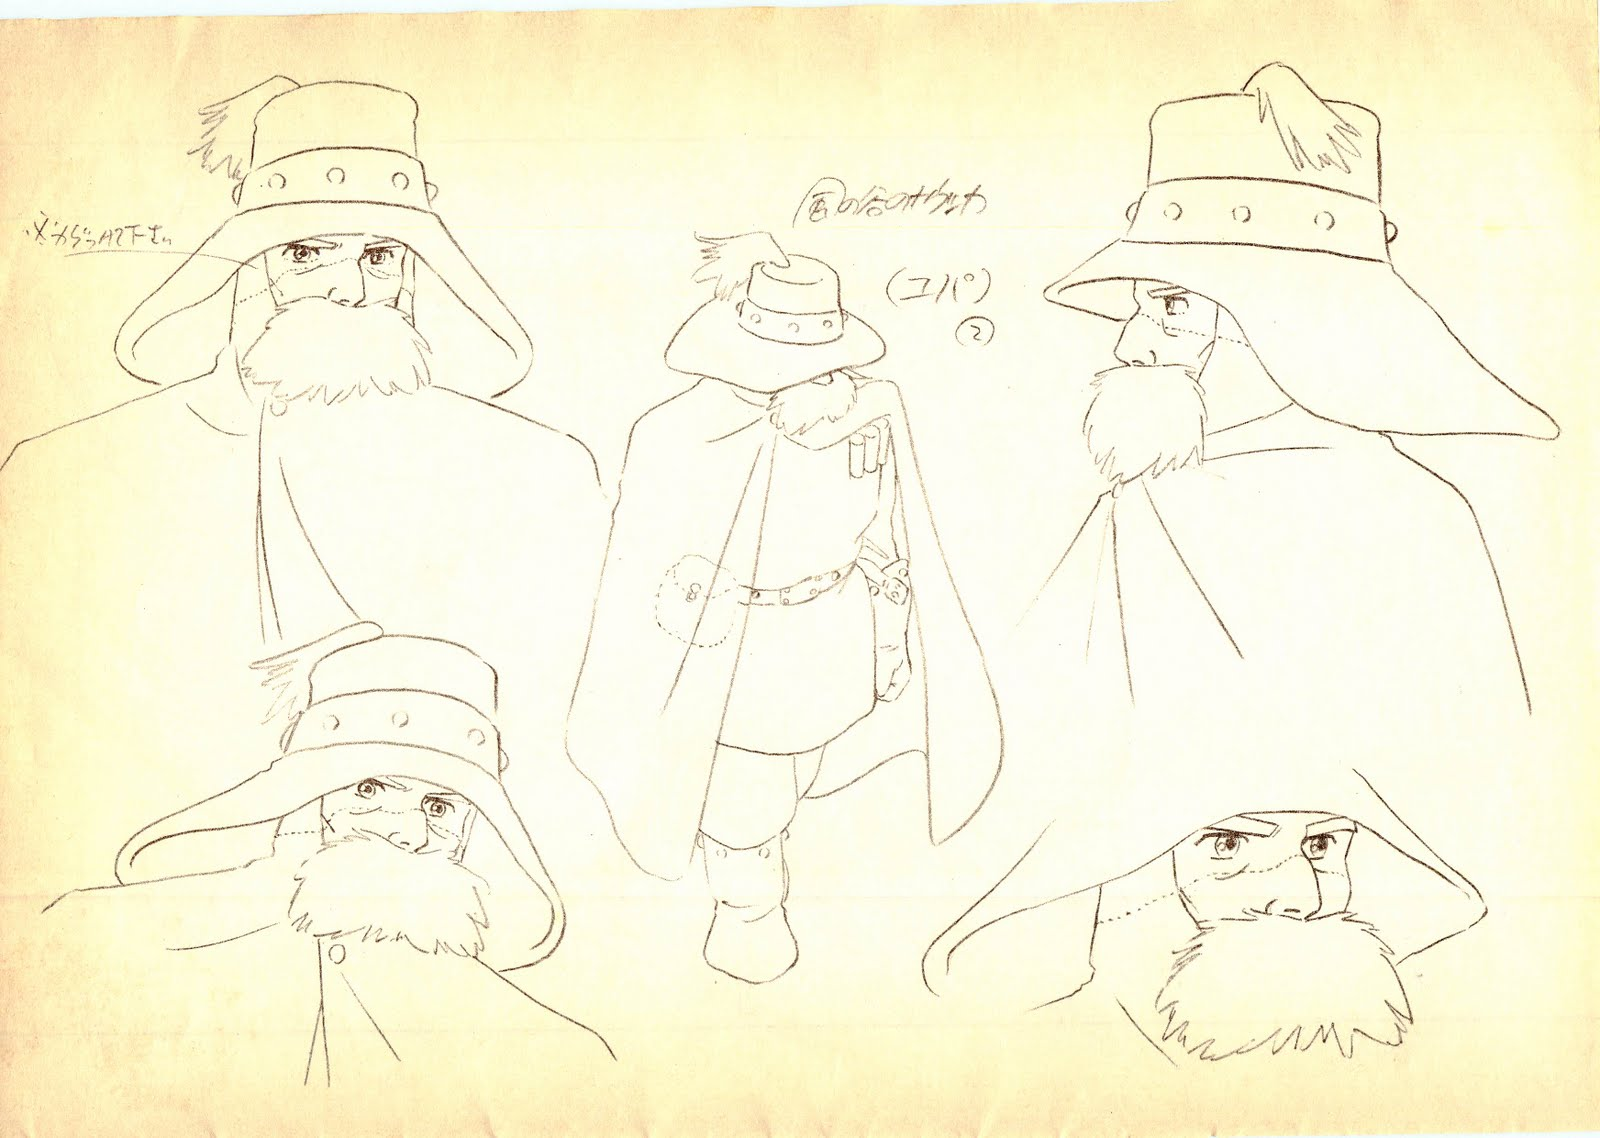 nausicaa_of_the_valley_of_the_wind_concept_art_character_05.jpg